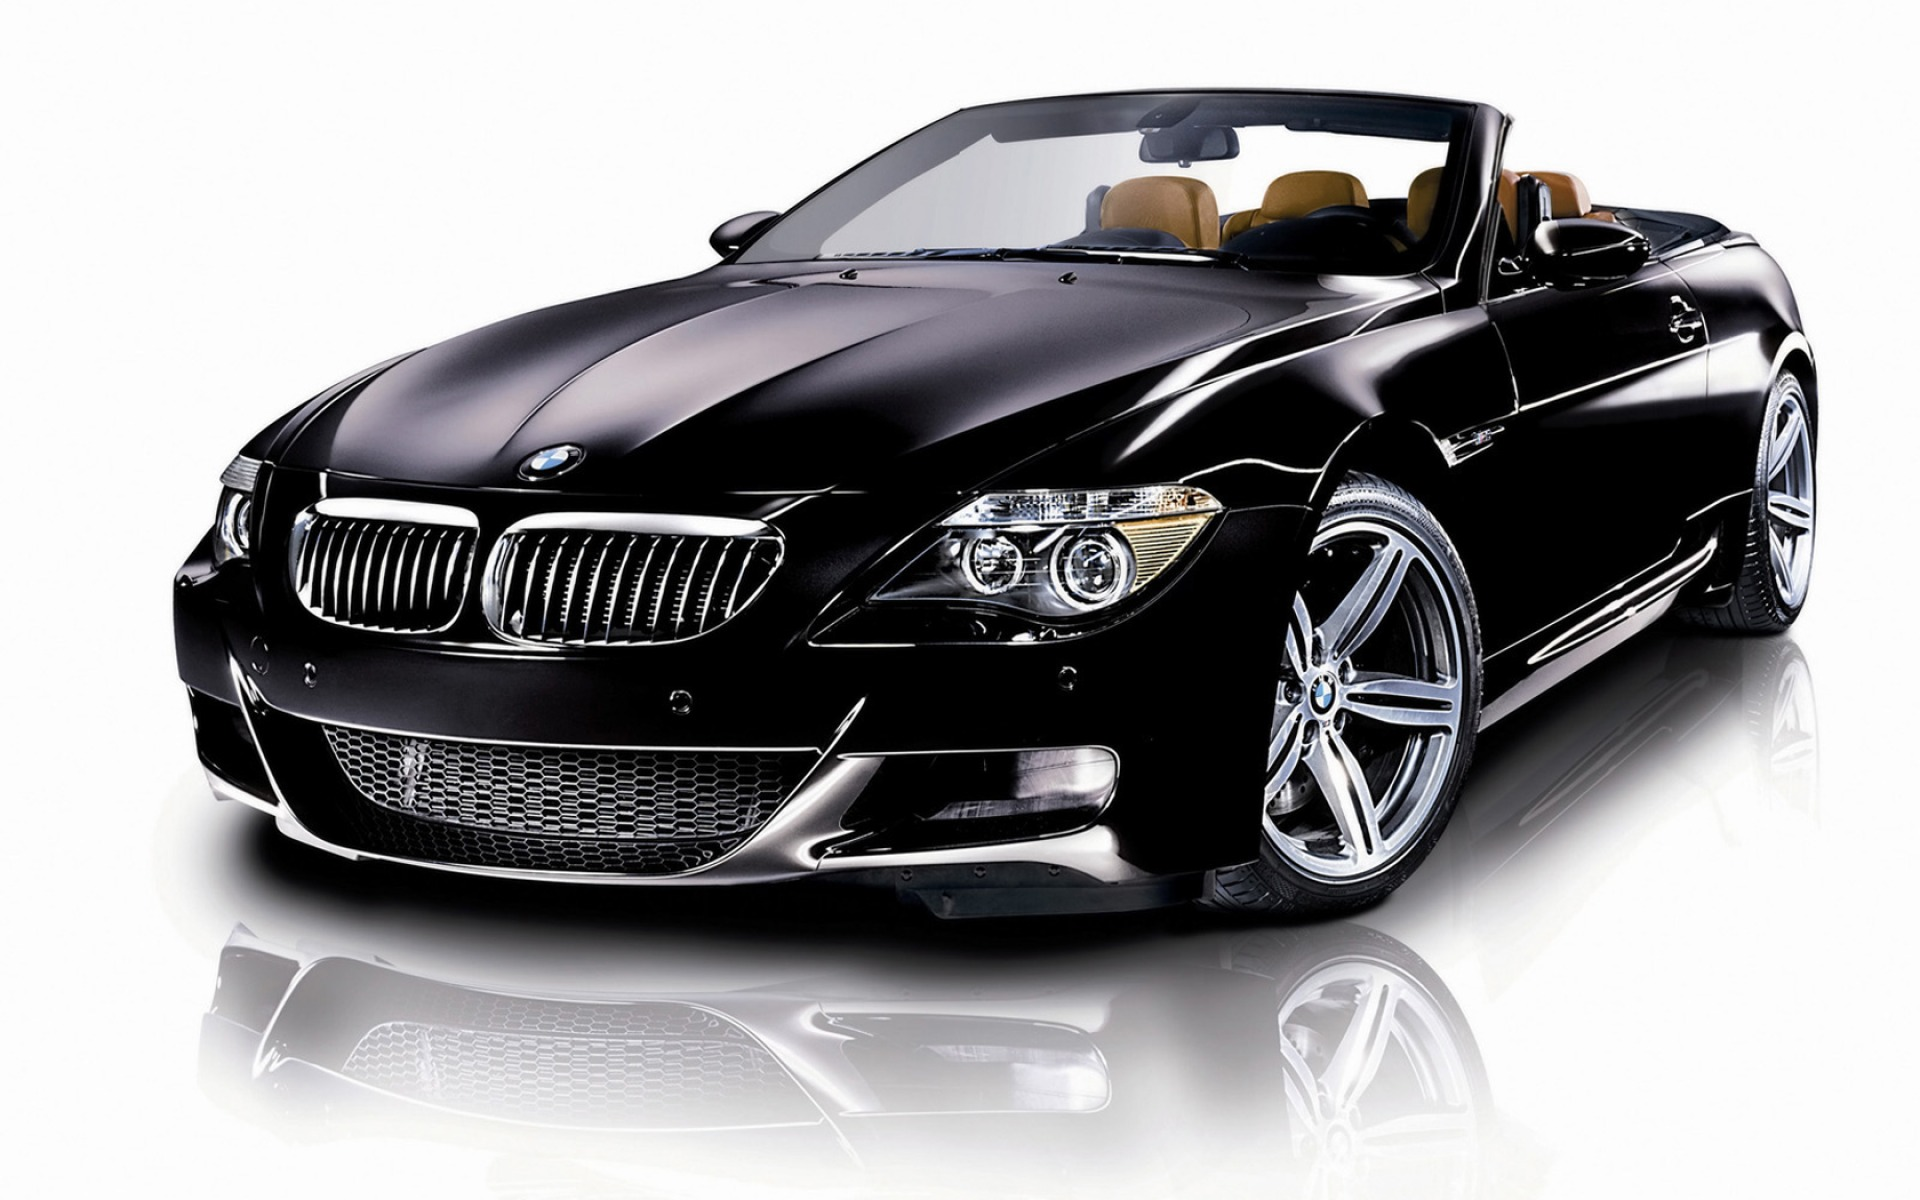 Ultrablogus  Pleasant Bmw Car Wallpaper Wallpapers For Free Download About   With Glamorous Bmw M Convertible Wallpaper Bmw Cars With Comely  Buick Enclave Interior Also Interior Vehicle Cleaning In Addition Cars With The Nicest Interior And Honda Interiors As Well As Hyundai Genesis  Interior Additionally Crv  Interior From Allfreedownloadcom With Ultrablogus  Glamorous Bmw Car Wallpaper Wallpapers For Free Download About   With Comely Bmw M Convertible Wallpaper Bmw Cars And Pleasant  Buick Enclave Interior Also Interior Vehicle Cleaning In Addition Cars With The Nicest Interior From Allfreedownloadcom